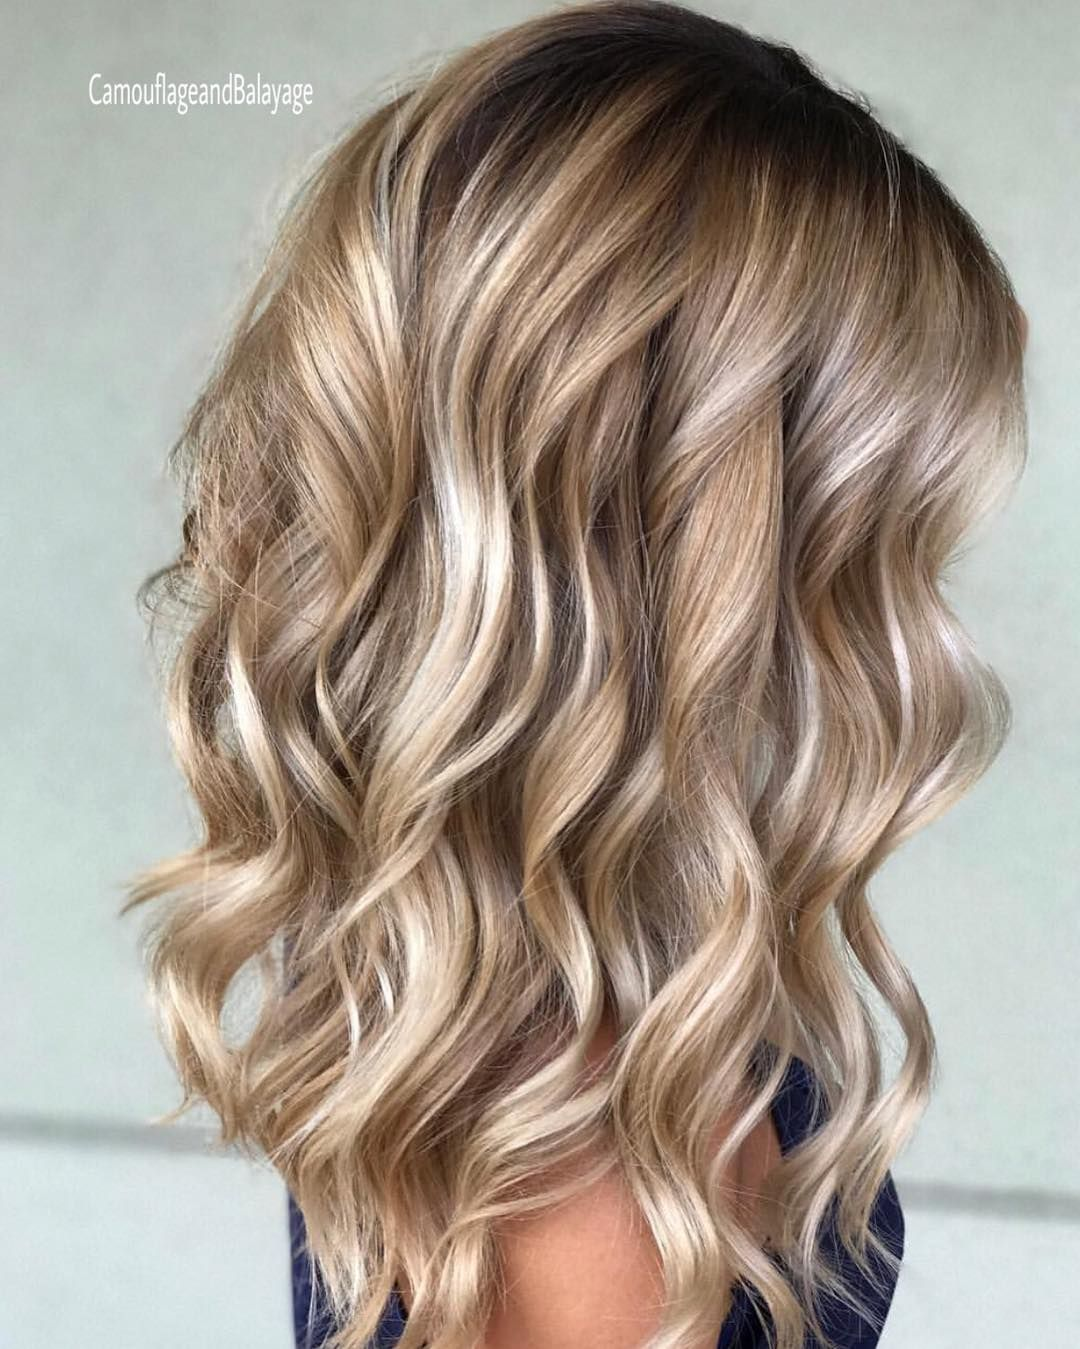 40 Blonde Hair Color Ideas With Balayage Highlights: Pin Od Oliwia Zalewska Na Fryzury